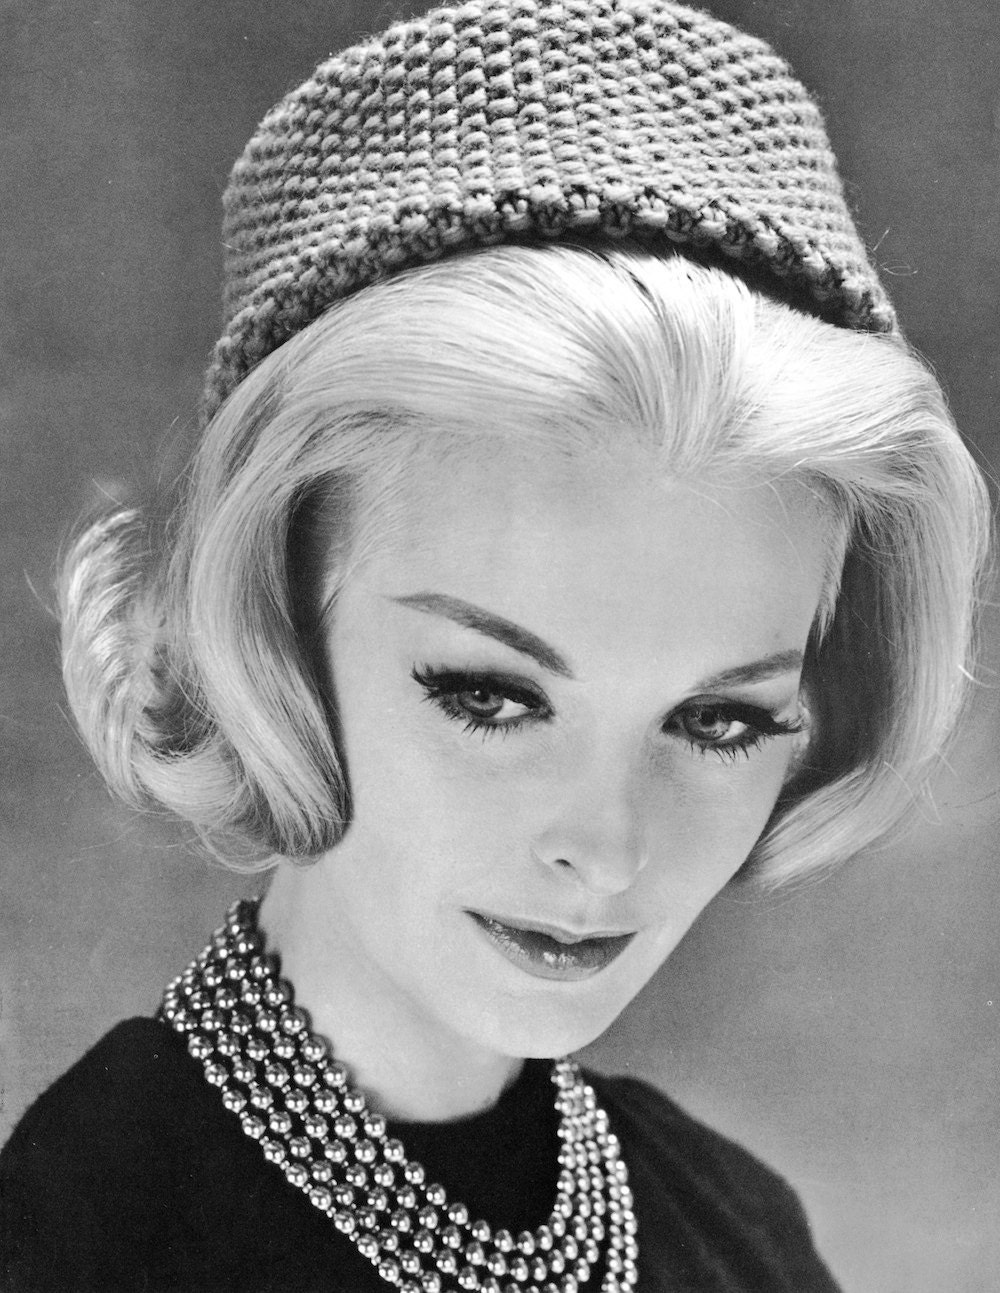 Knitting Pattern Vintage Hat : 1960s Pill Box Hat Vintage Knitting Pattern by ...